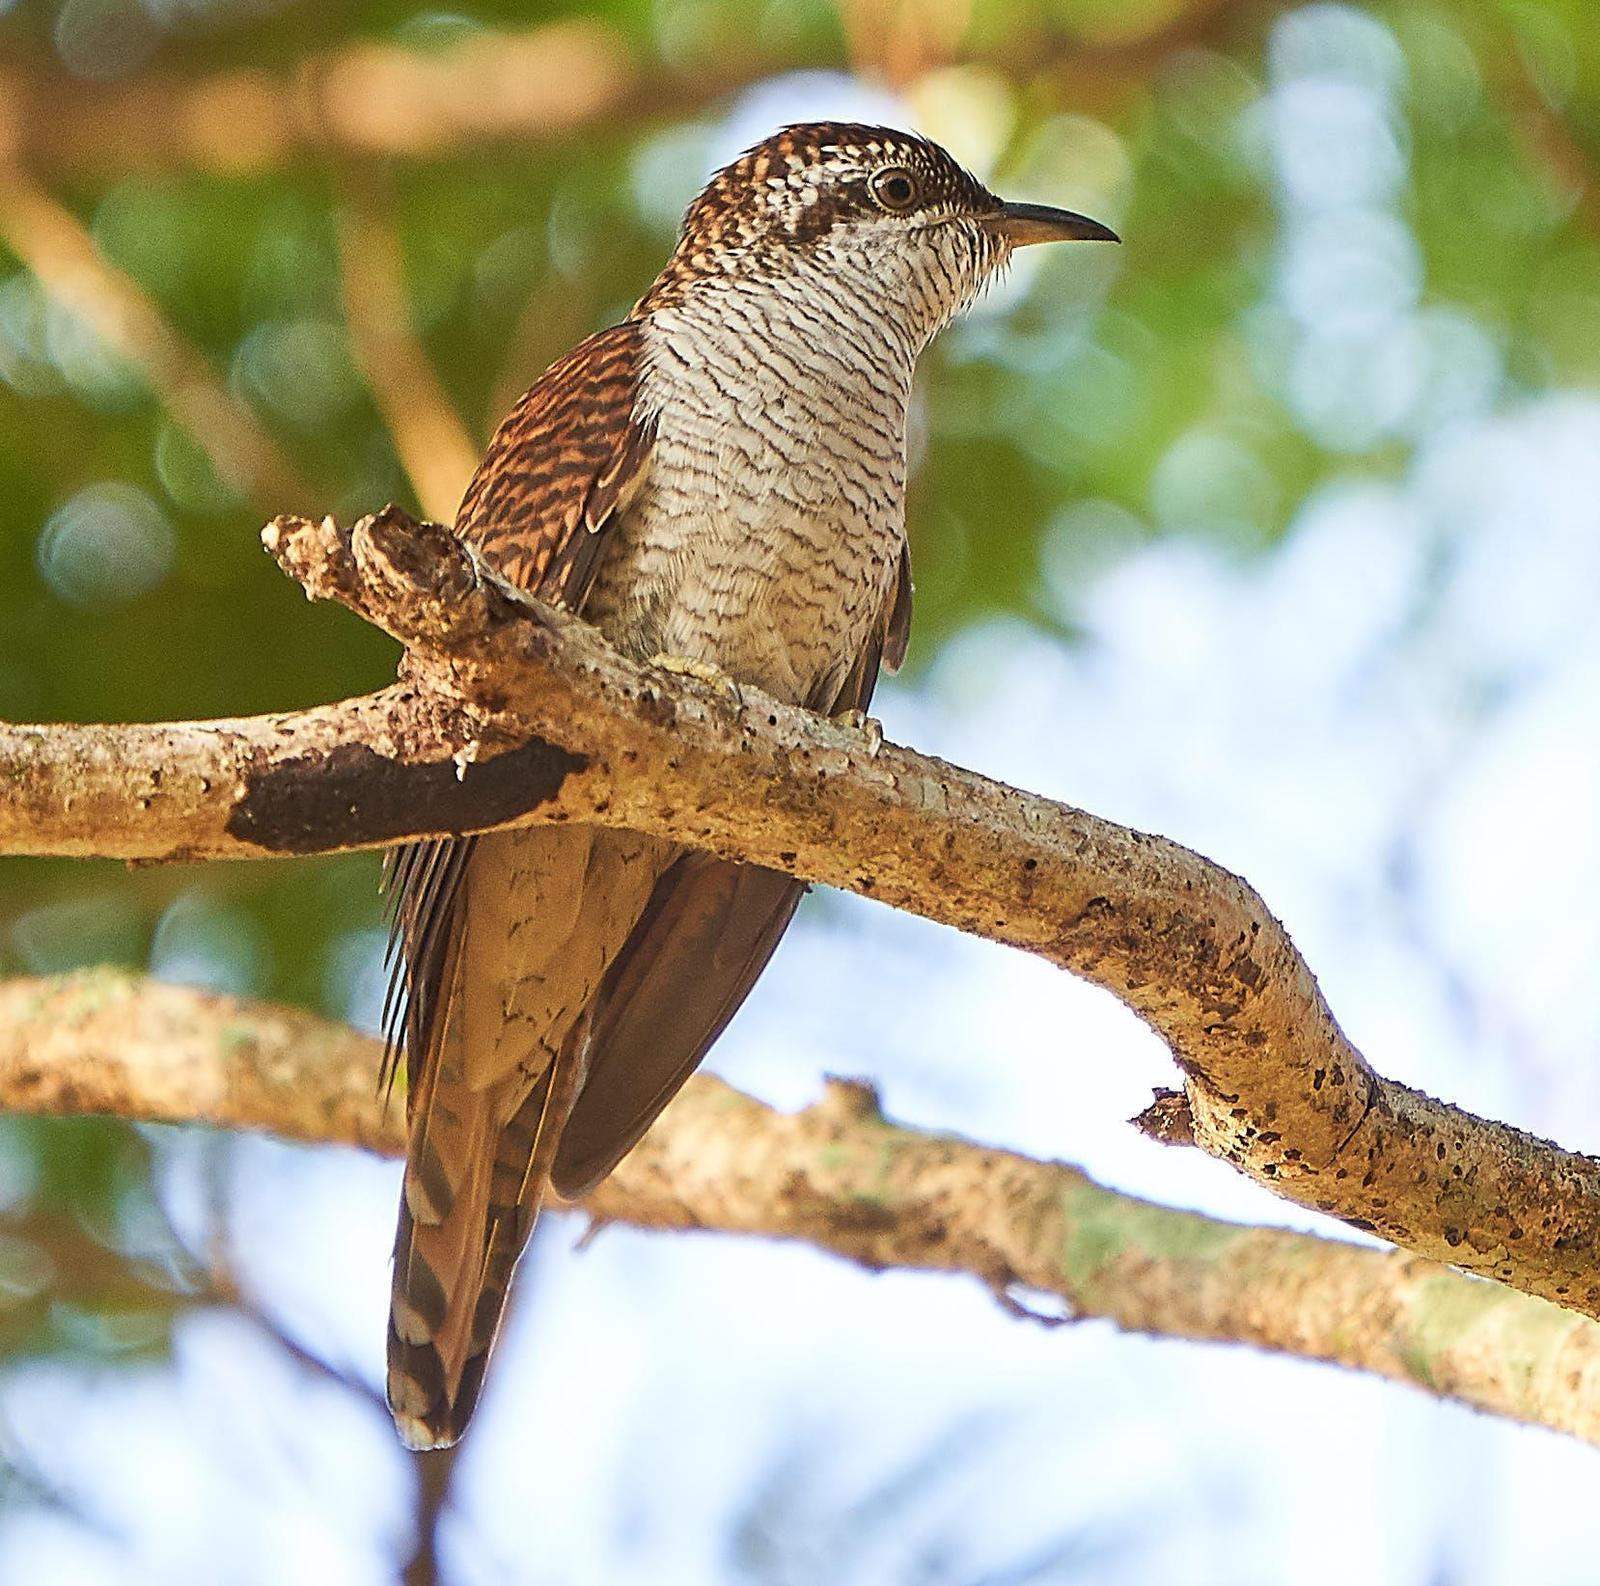 Banded Bay Cuckoo Photo by Steven Cheong